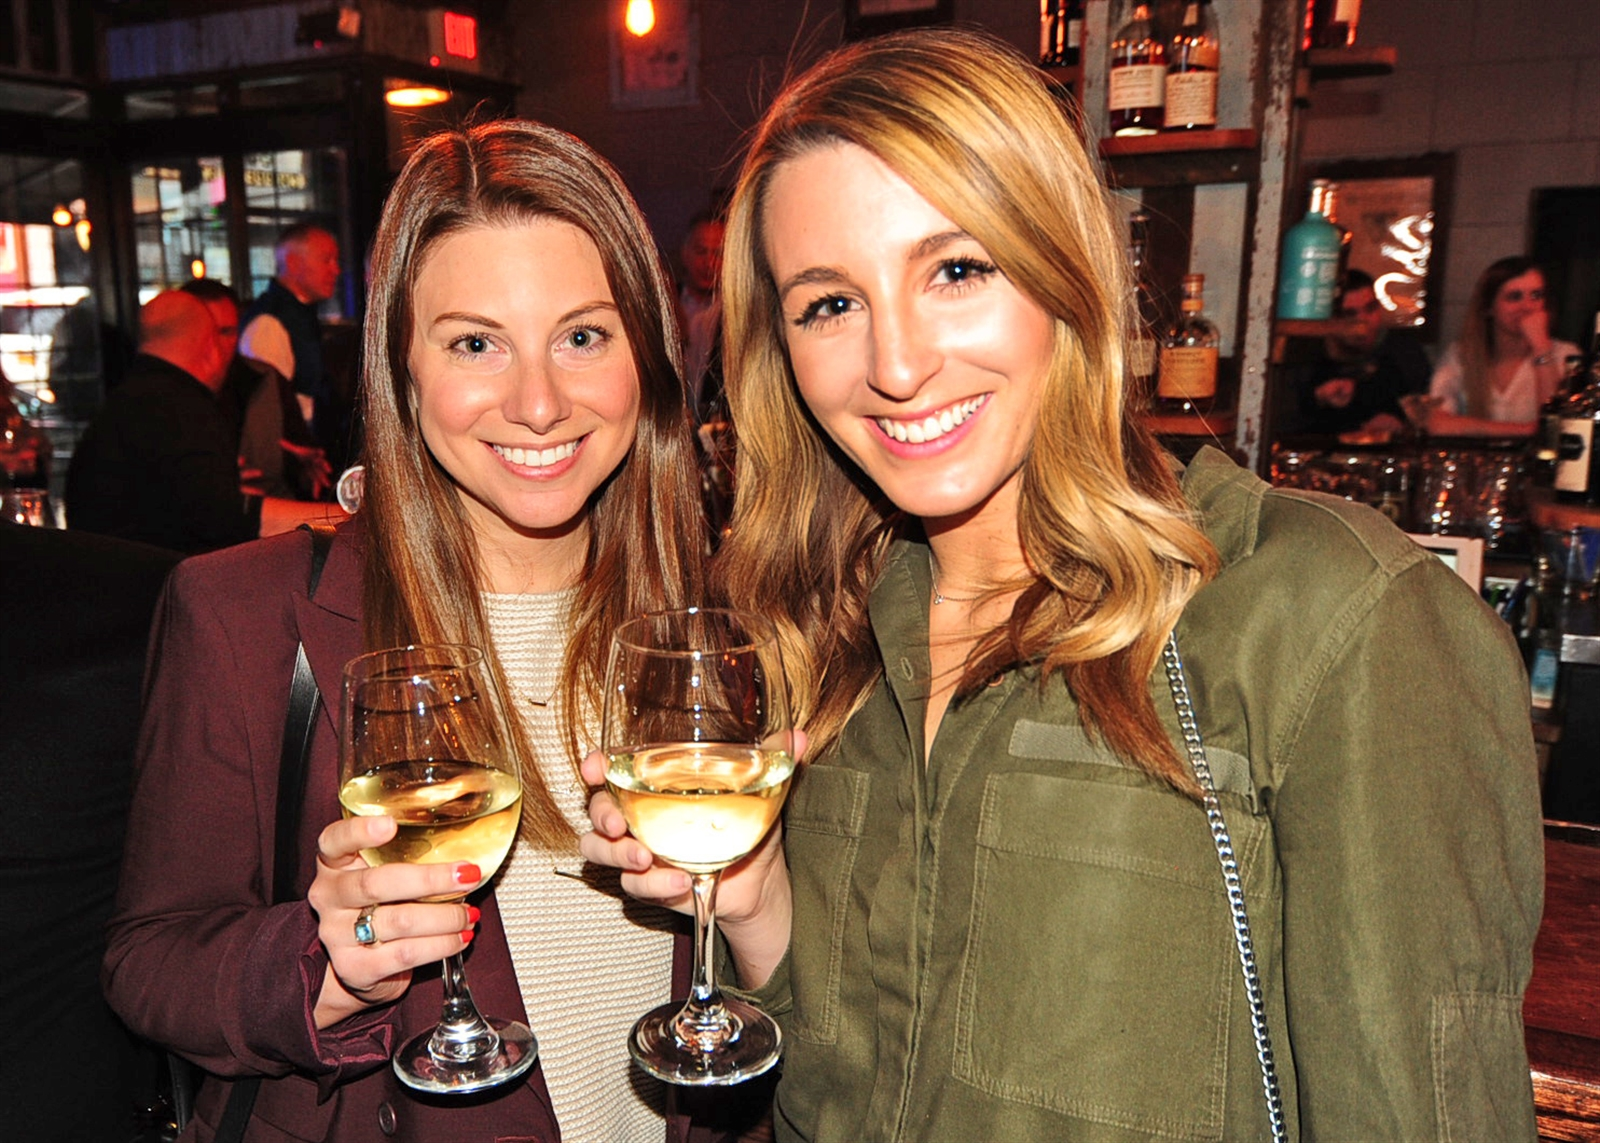 Patrons celebrate at Local Kitchen & Beer Bar's grand-opening party. (Dan Cappellazzo/Special to The News)